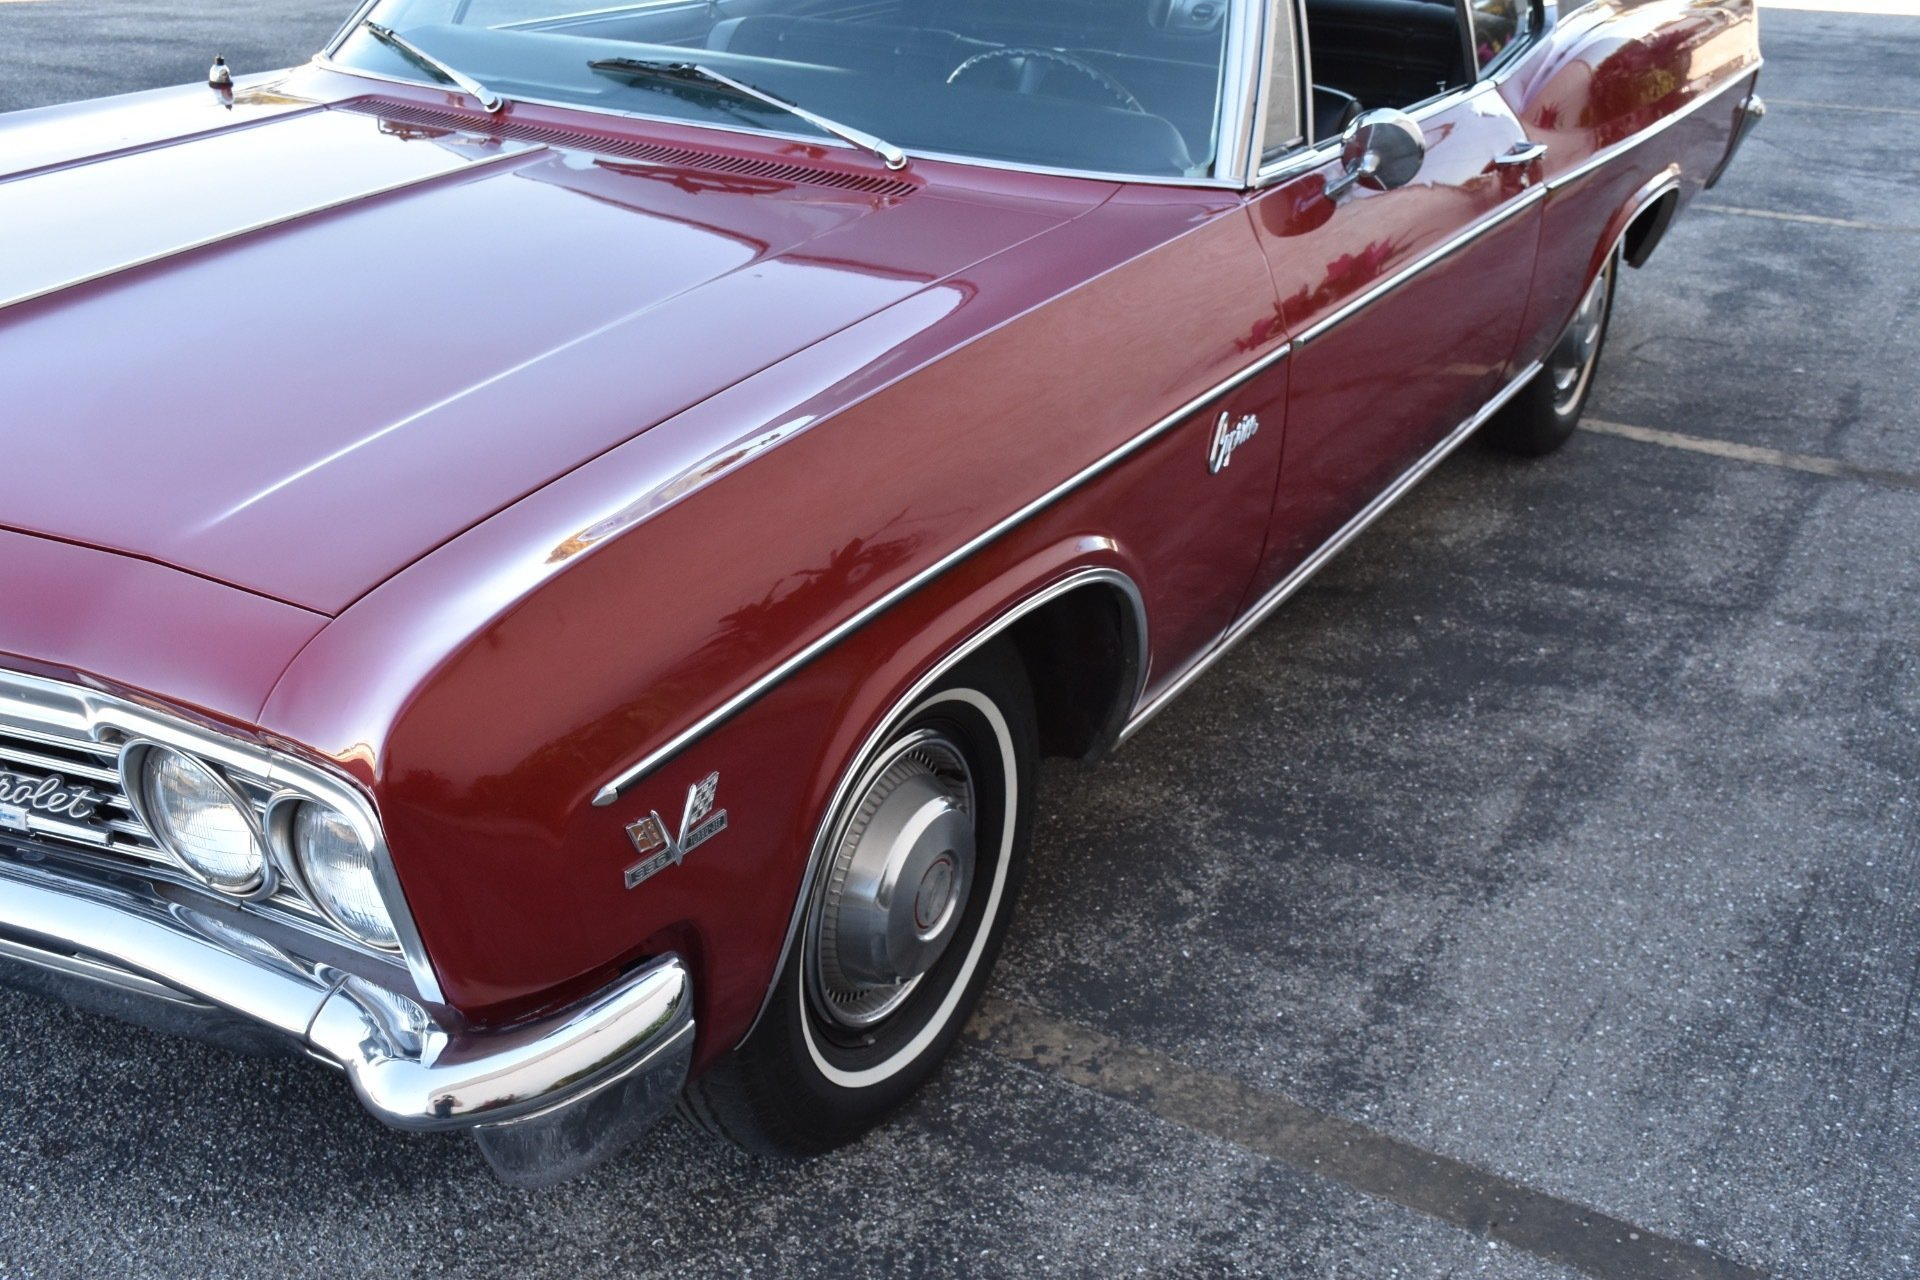 1966 Chevrolet Caprice Ideal Classic Cars Llc Chevy For Sale 4532900067af Low Res